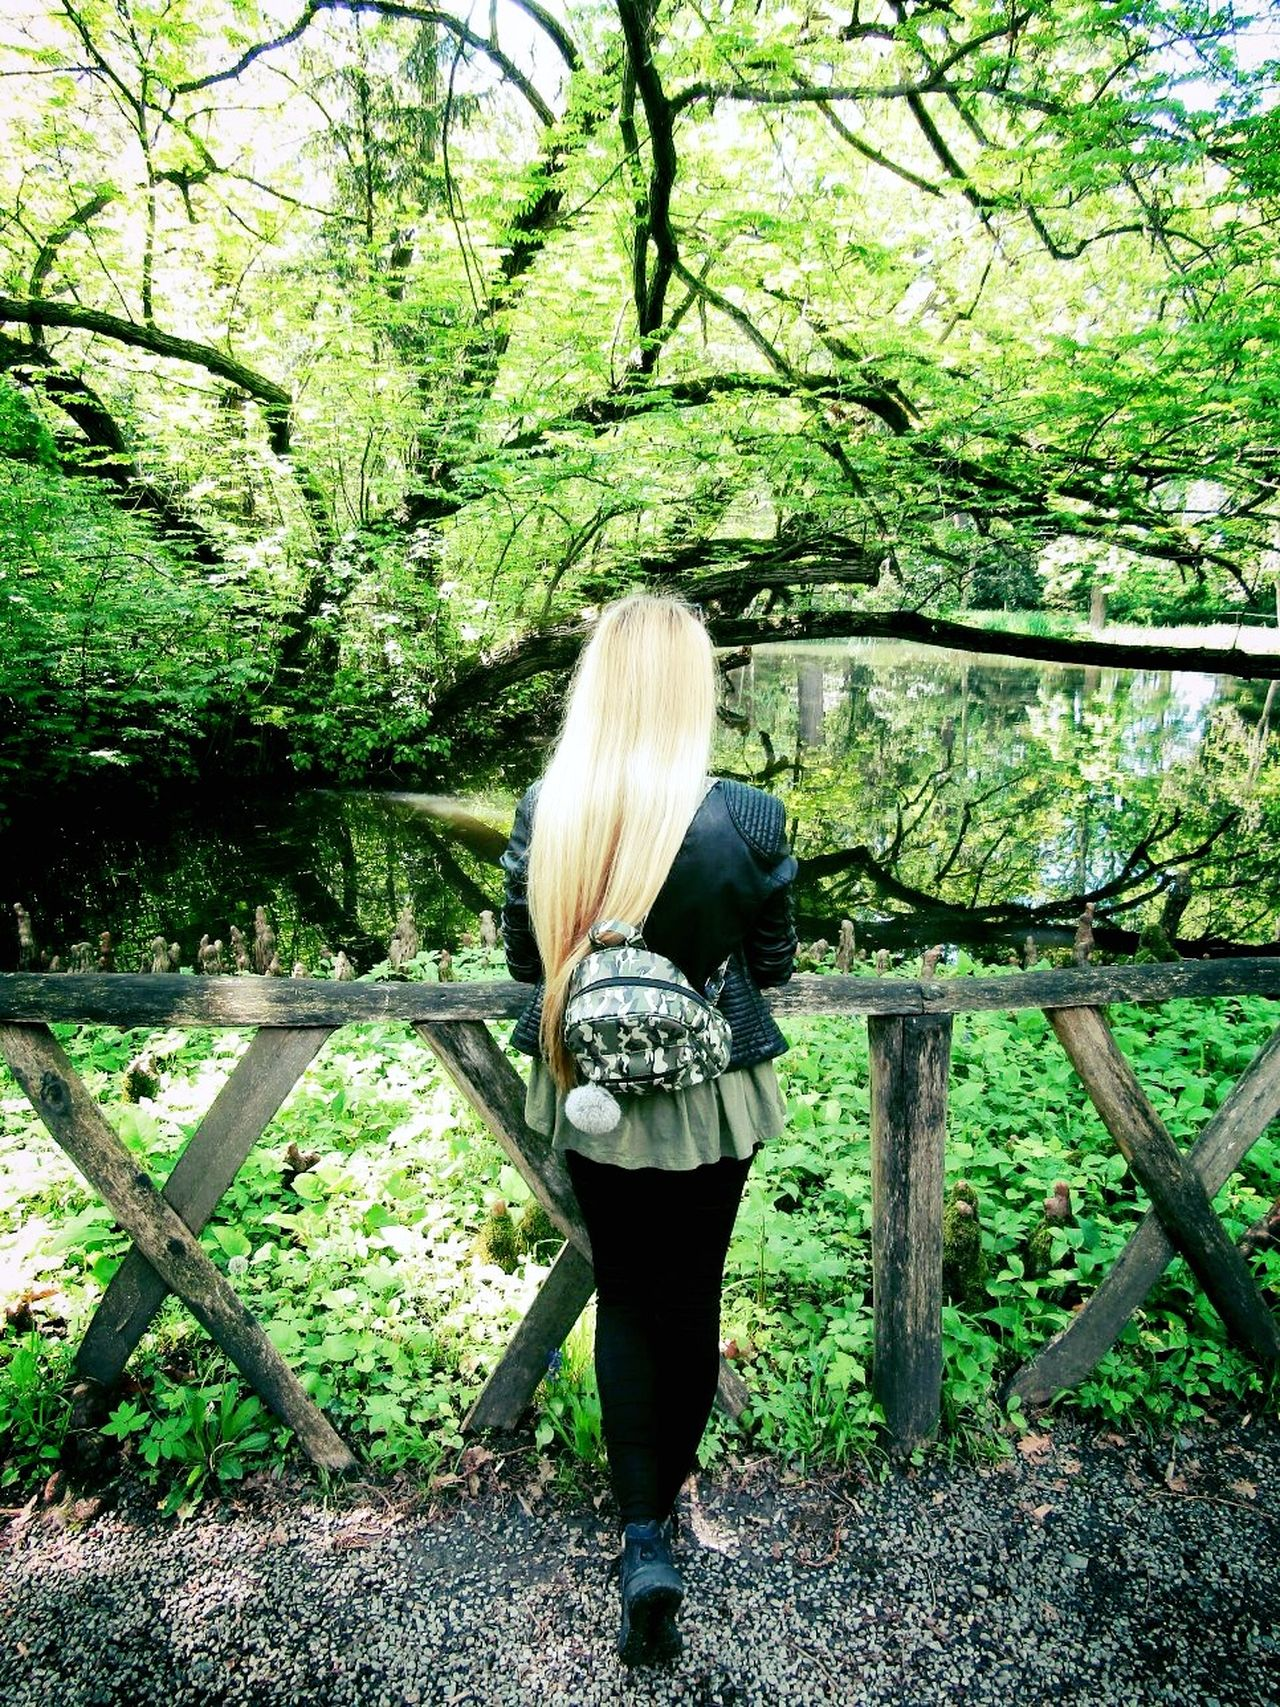 Outdoors Standing Nature Only Women Young Women Girl Hungariangirl FollowmeGreen Color Blondehairdontcare Water Lakephotography Landscape Blondegirl Back Waterreflections  Lakeview Wood Tree Moment Capture The Moment Outdoorphotography Nature On Your Doorstep From My Point Of View Beauty In Nature